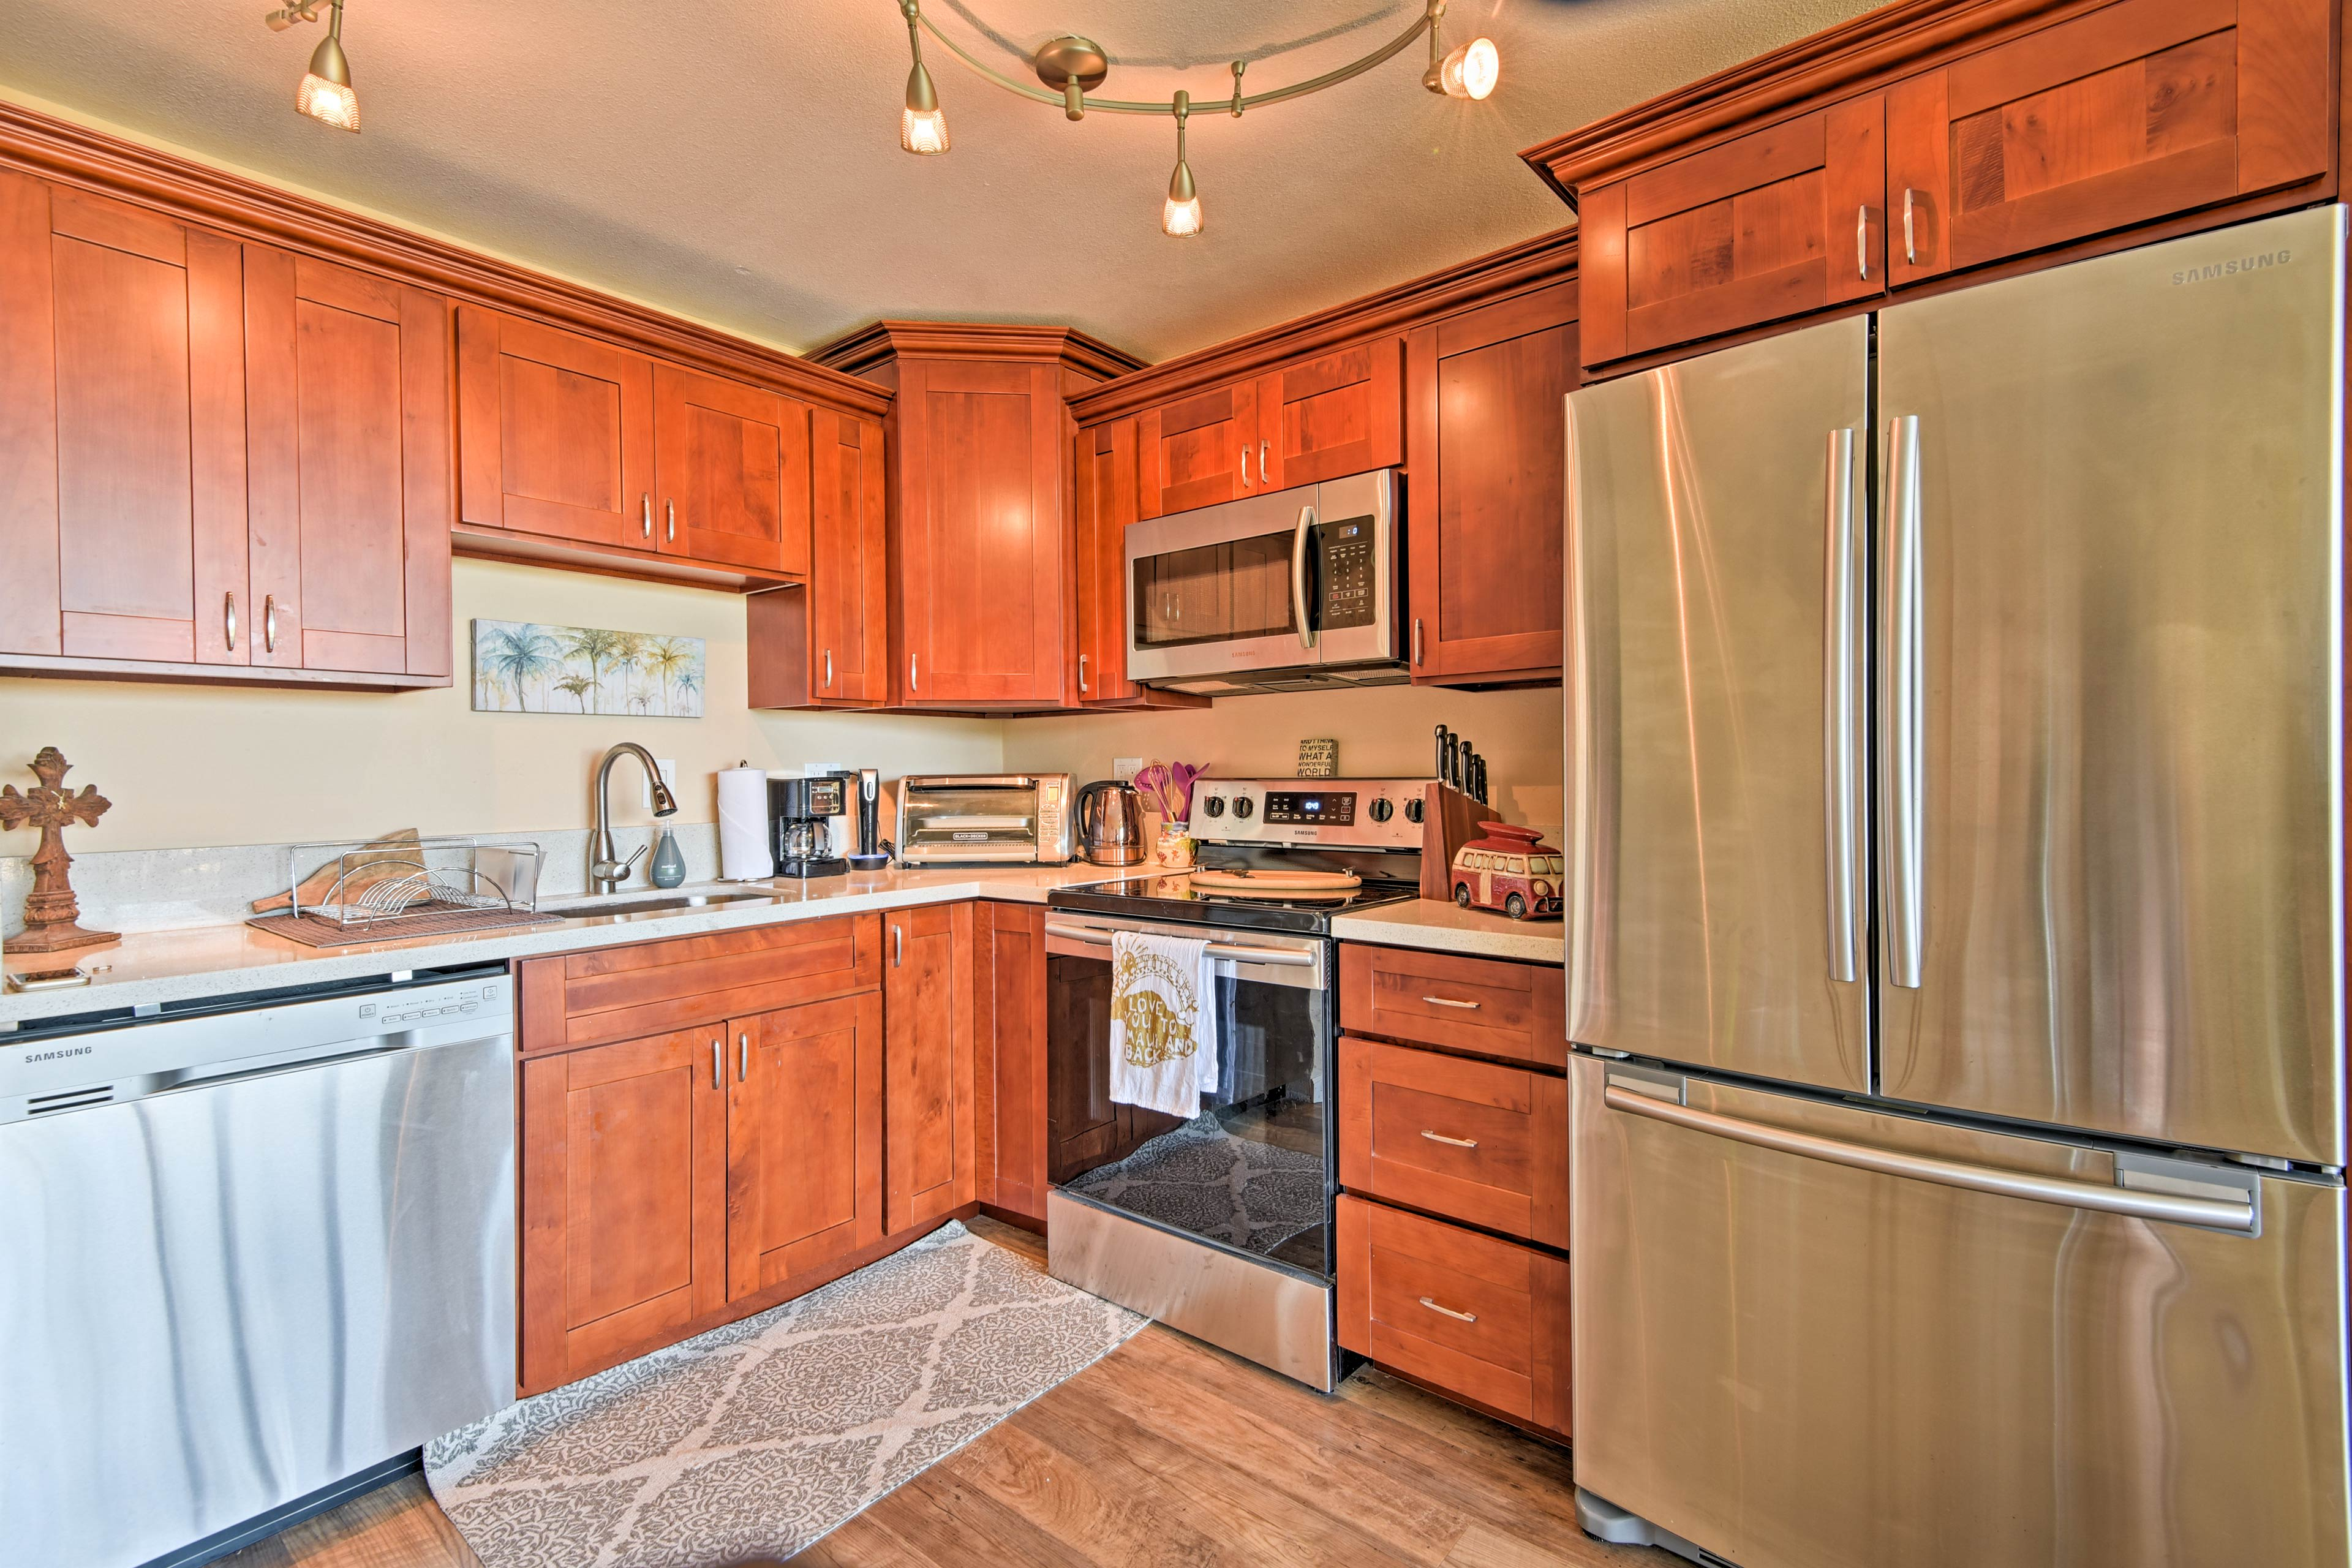 Stainless steel appliances will make cooking a breeze!